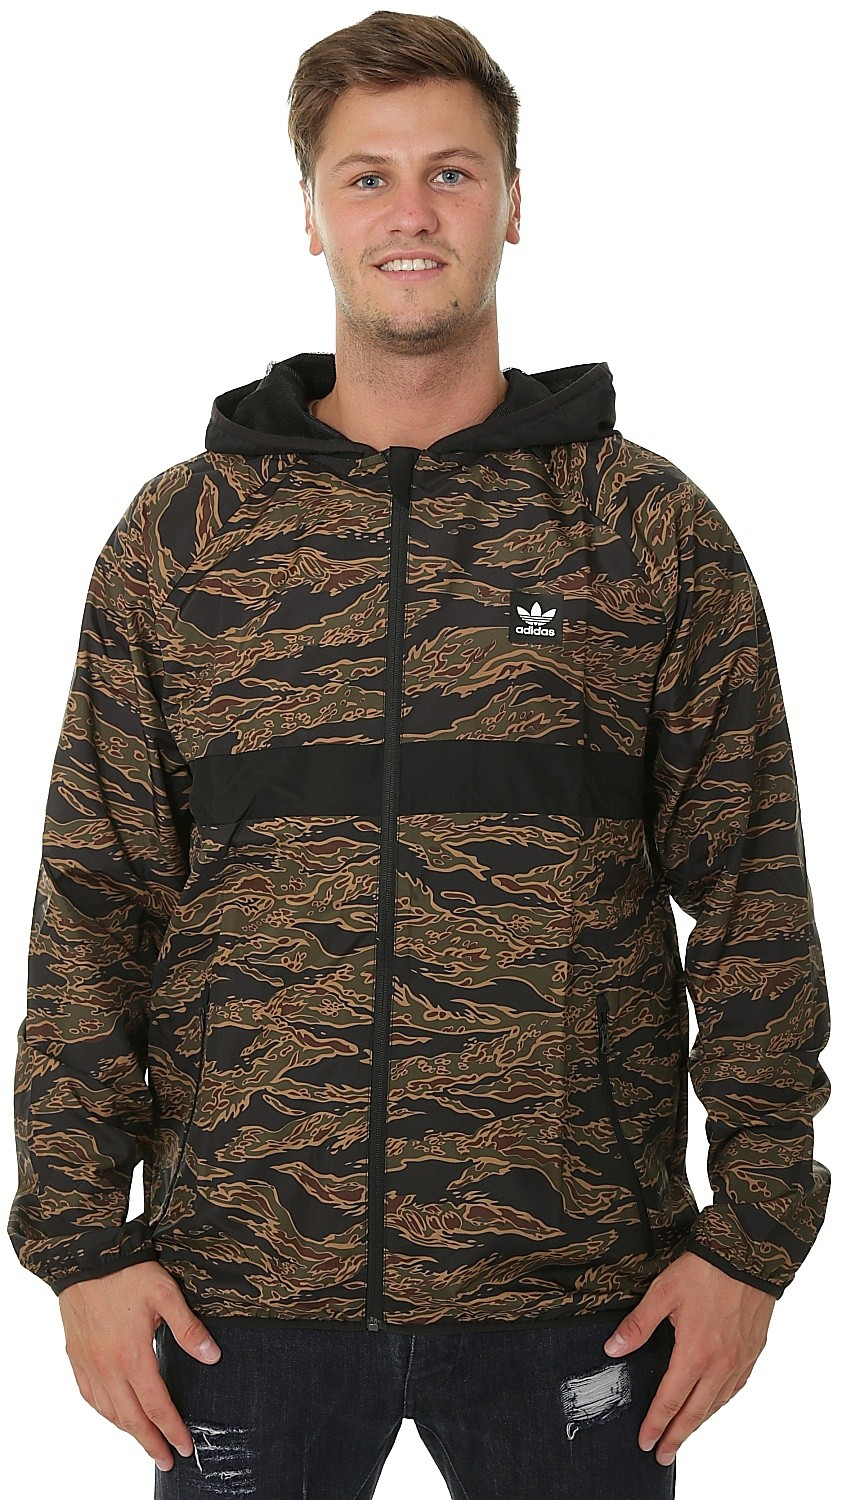 Jacket Adidas Camo Print Bb Packable Originals Camouflage Wind tsdQrCxhBo